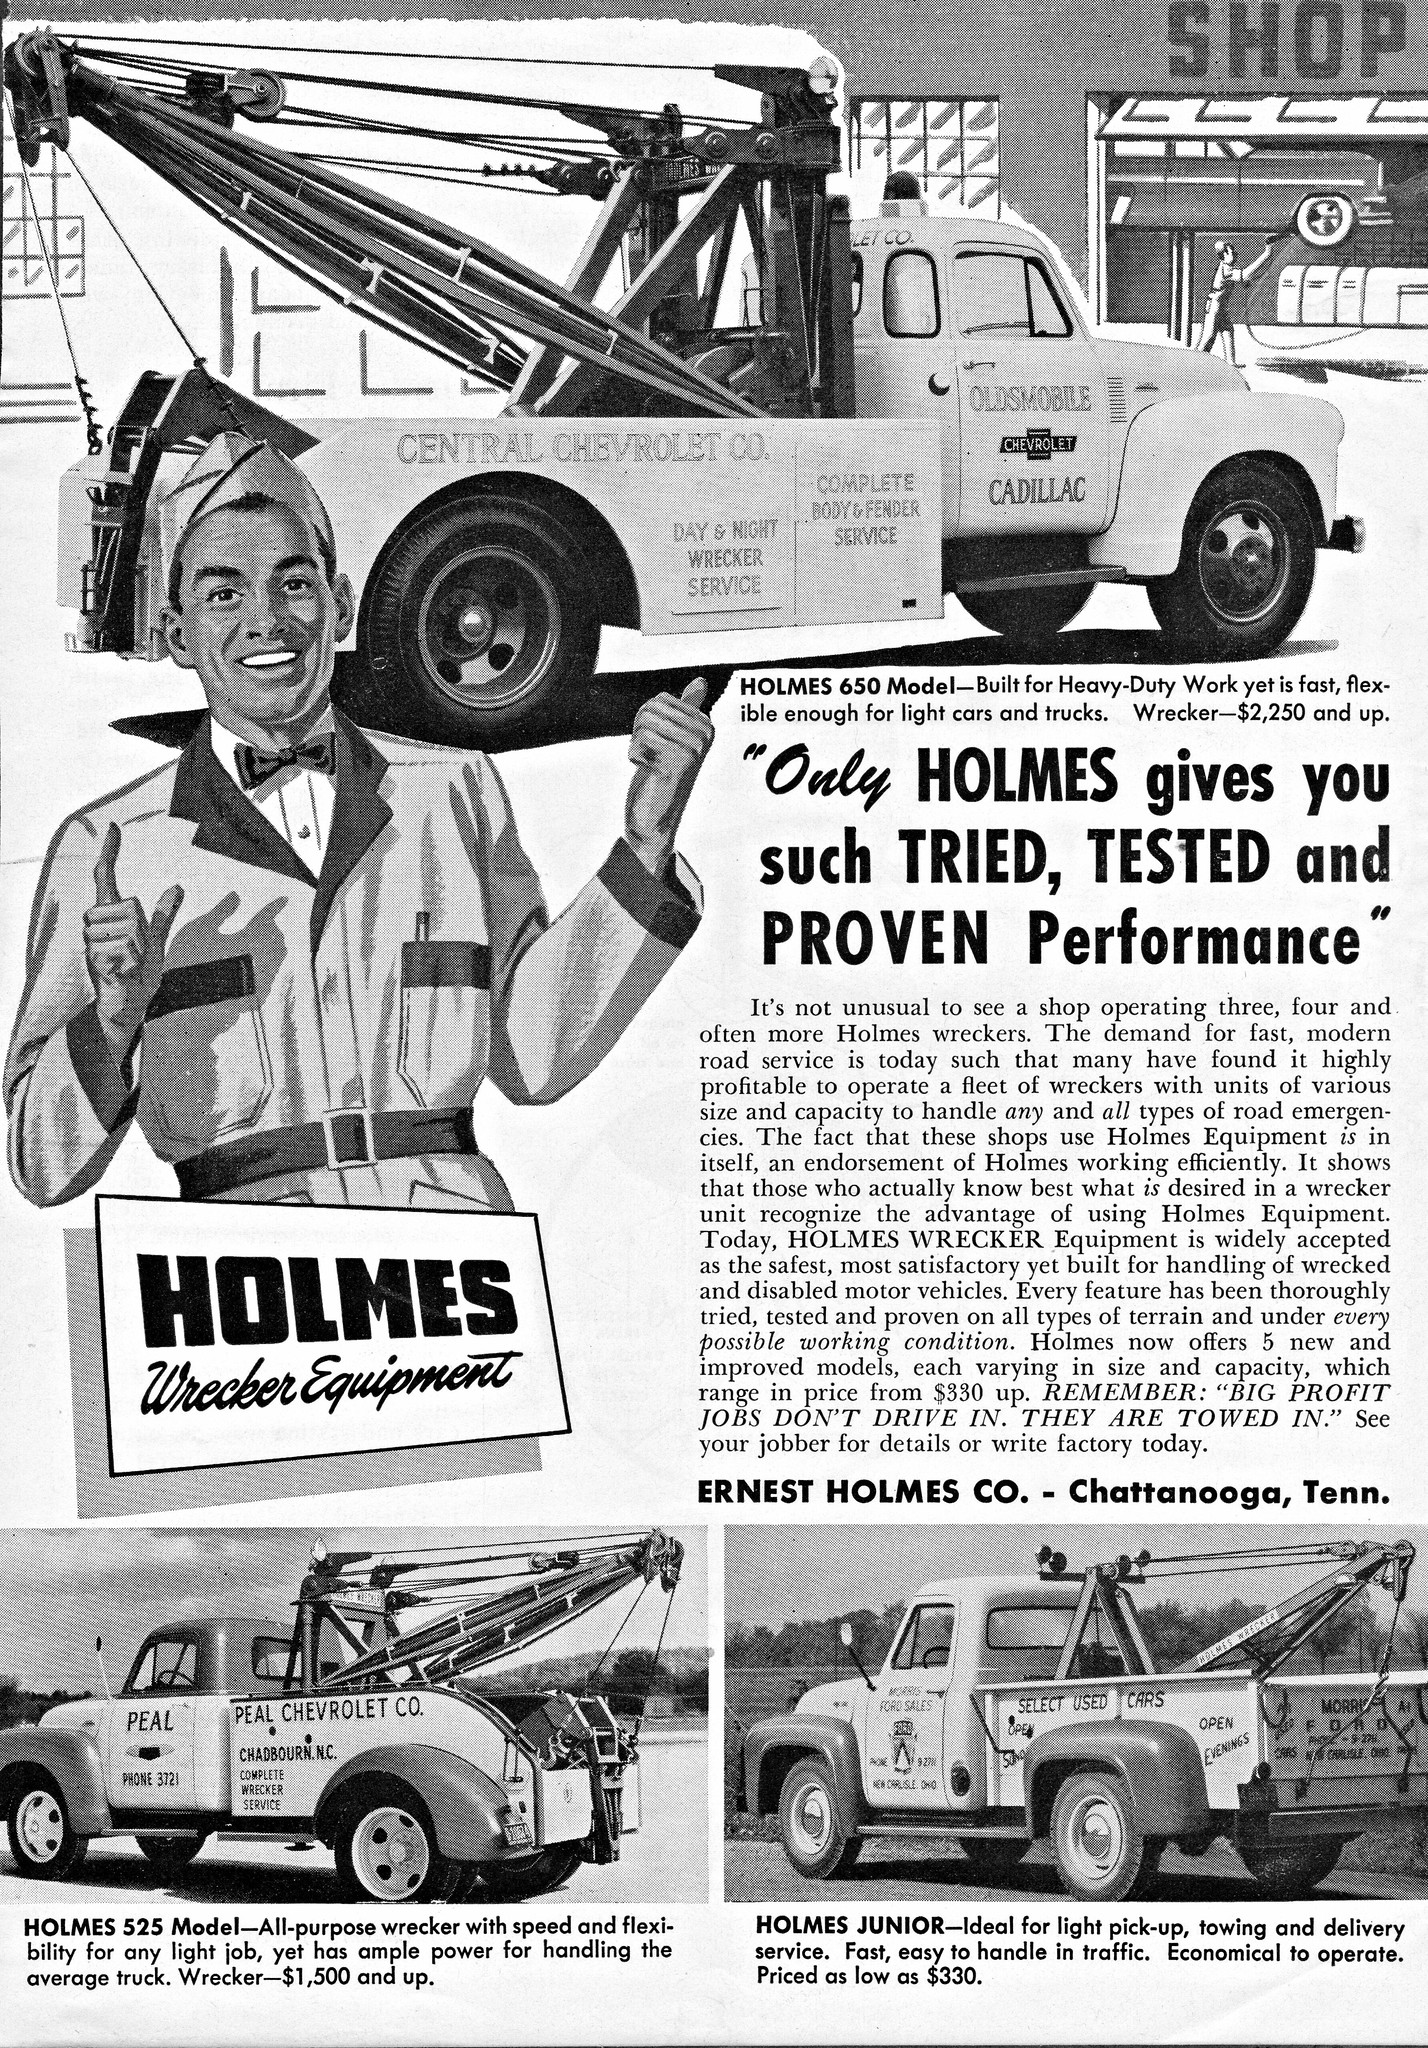 Holmes Wrecker Equipment - 1954